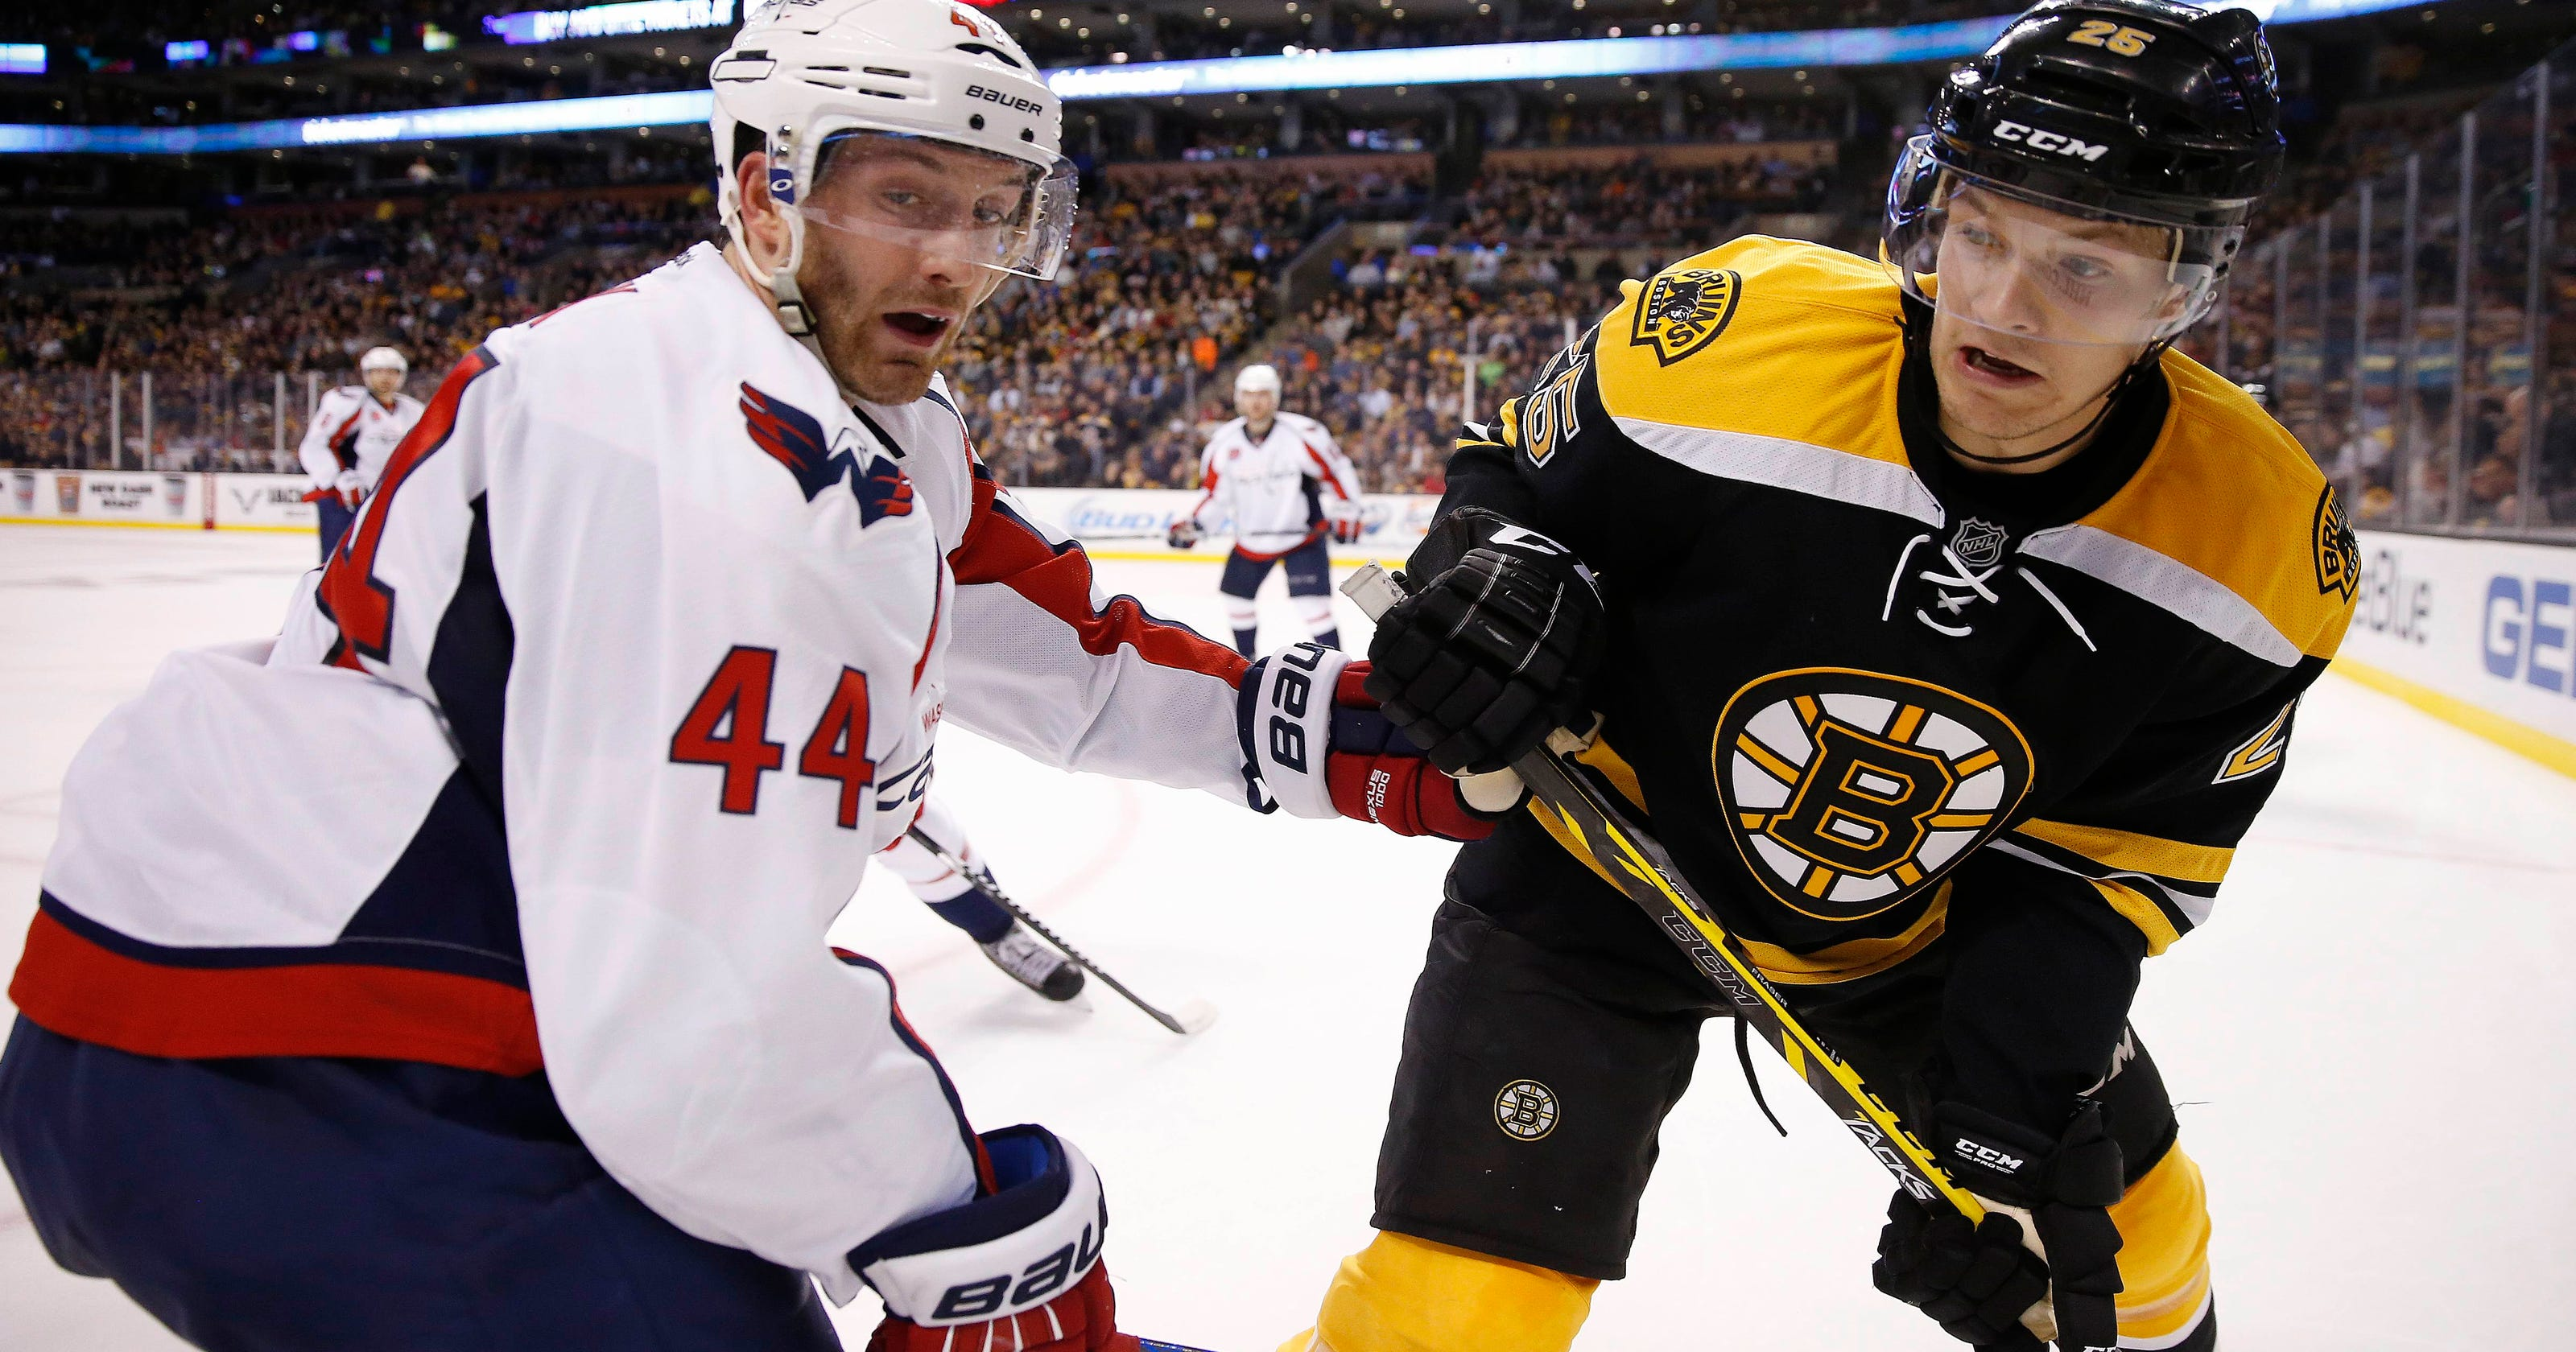 1d63fb4d2ce Ovechkin lifts Caps to 4-0 win over Bruins